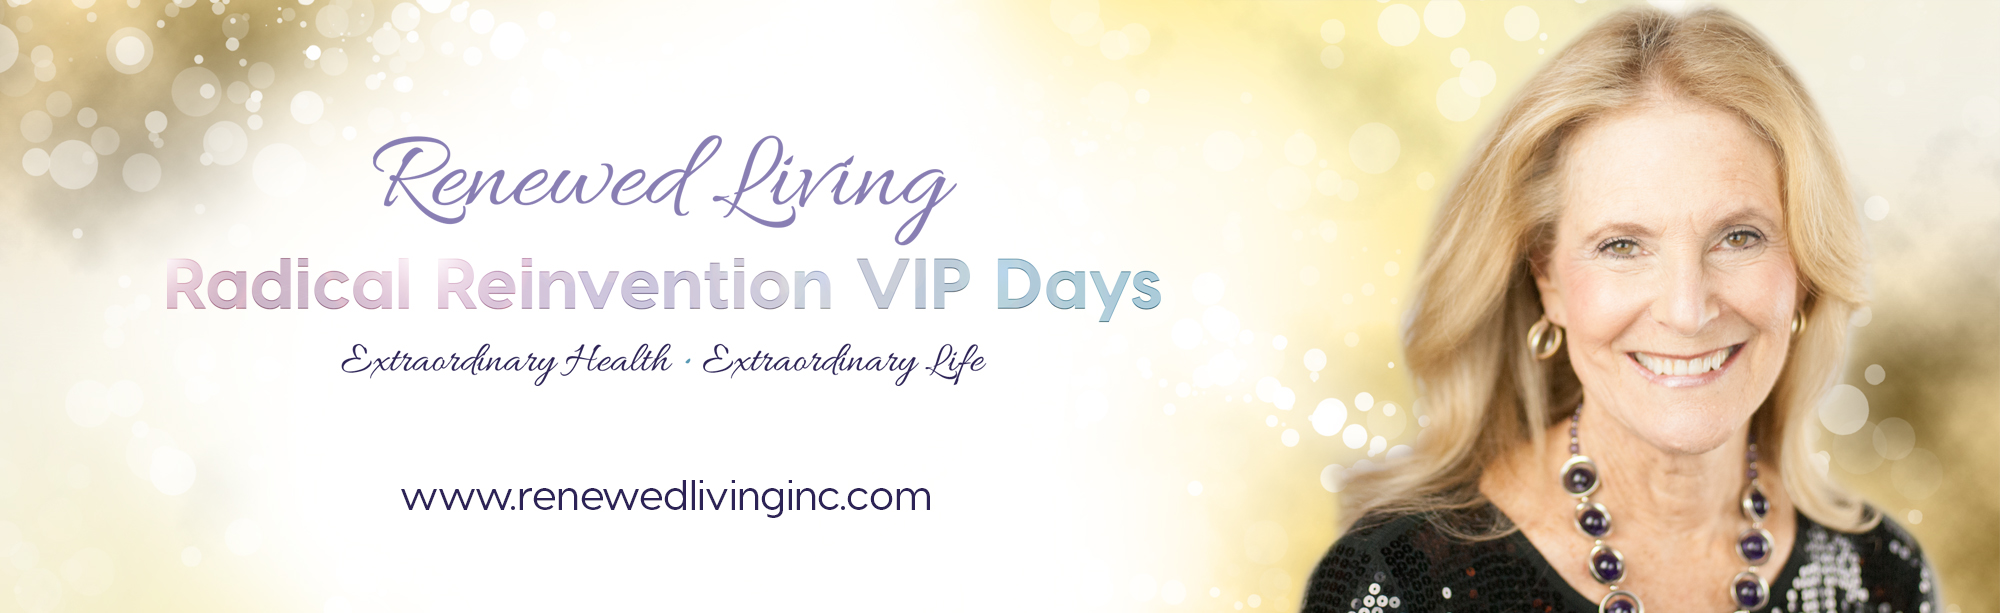 VIP with glitter - Renewed Living